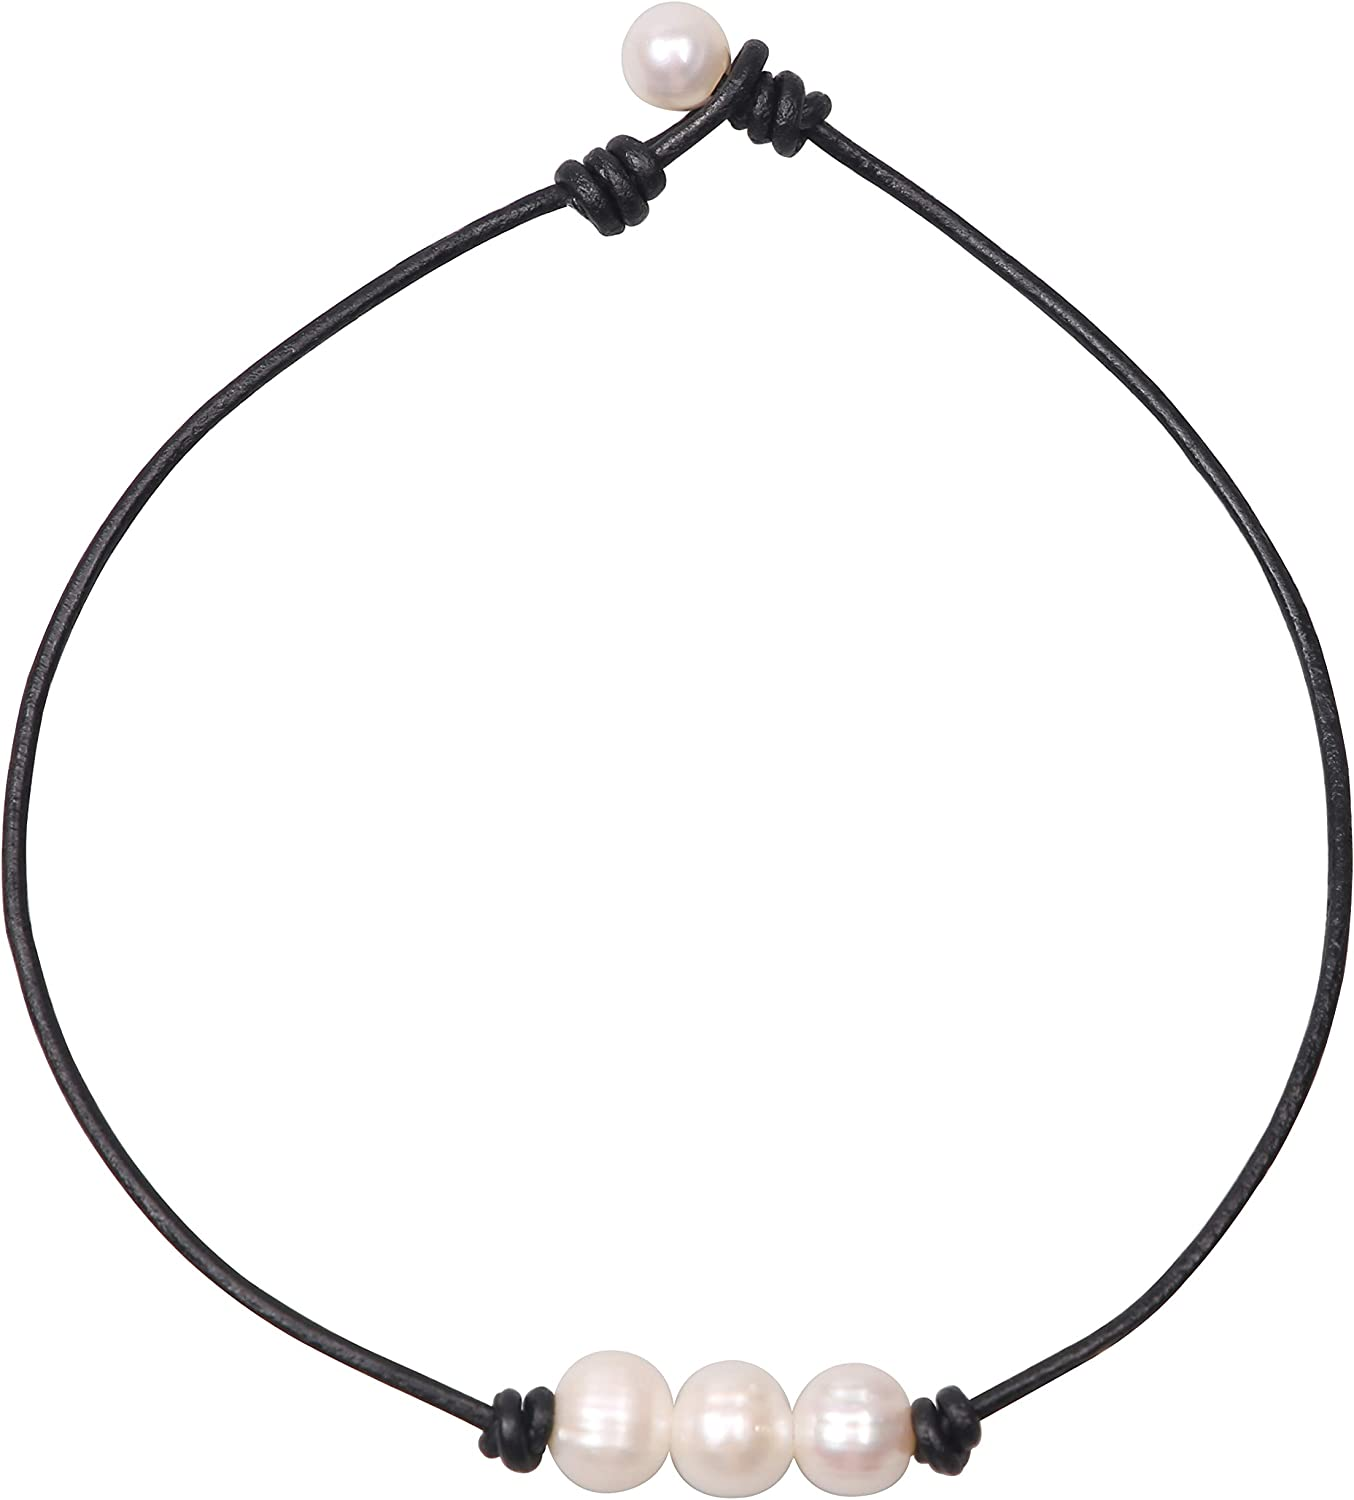 pearl choker necklace Real pearl necklaces gift for her,christmas gift